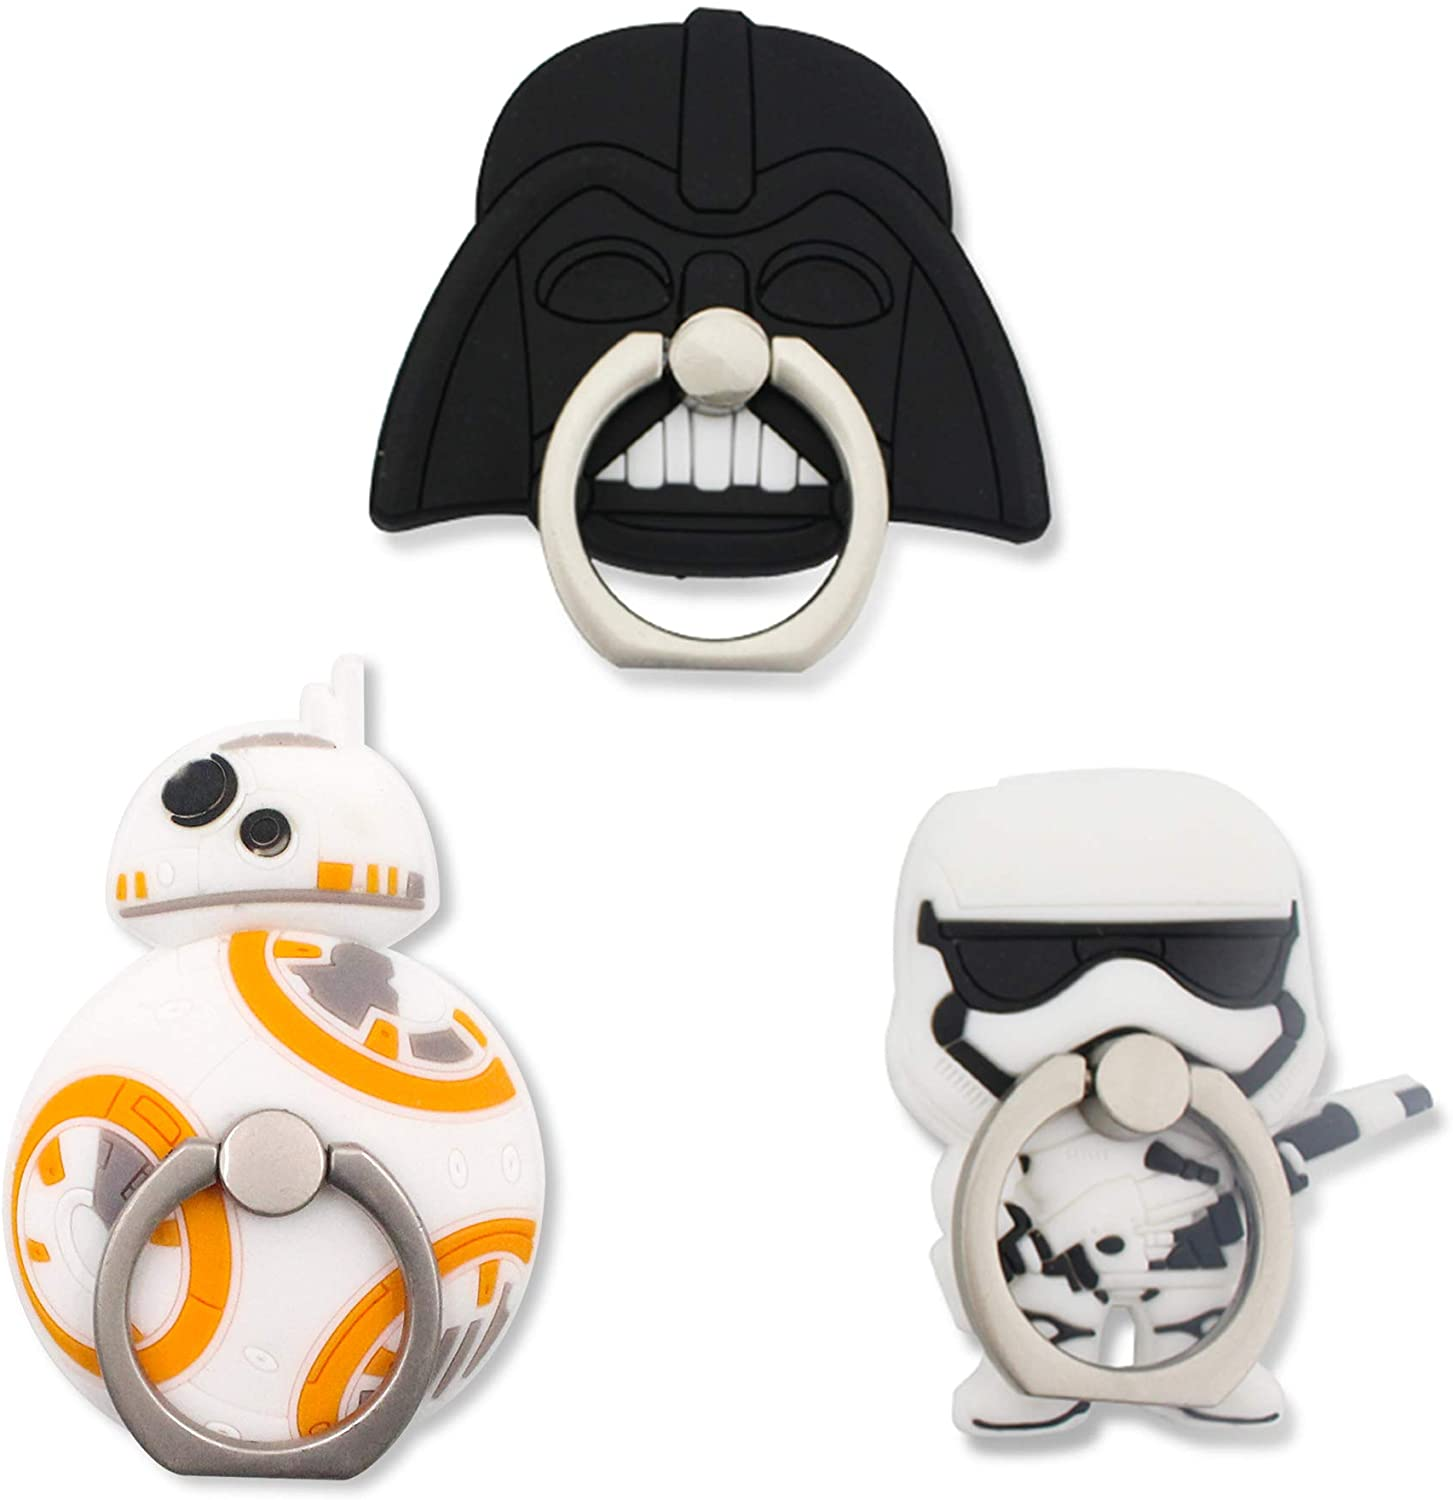 Finex 3 Pcs Set Star Wars 2-in-1 Mobile Cell Smart Phone Kickstand Finger Ring and Holder Stand Grip Cute 360 Degree Rotating for iPhone Samsung Android Case Random Kylo Ren Storm Trooper BB8